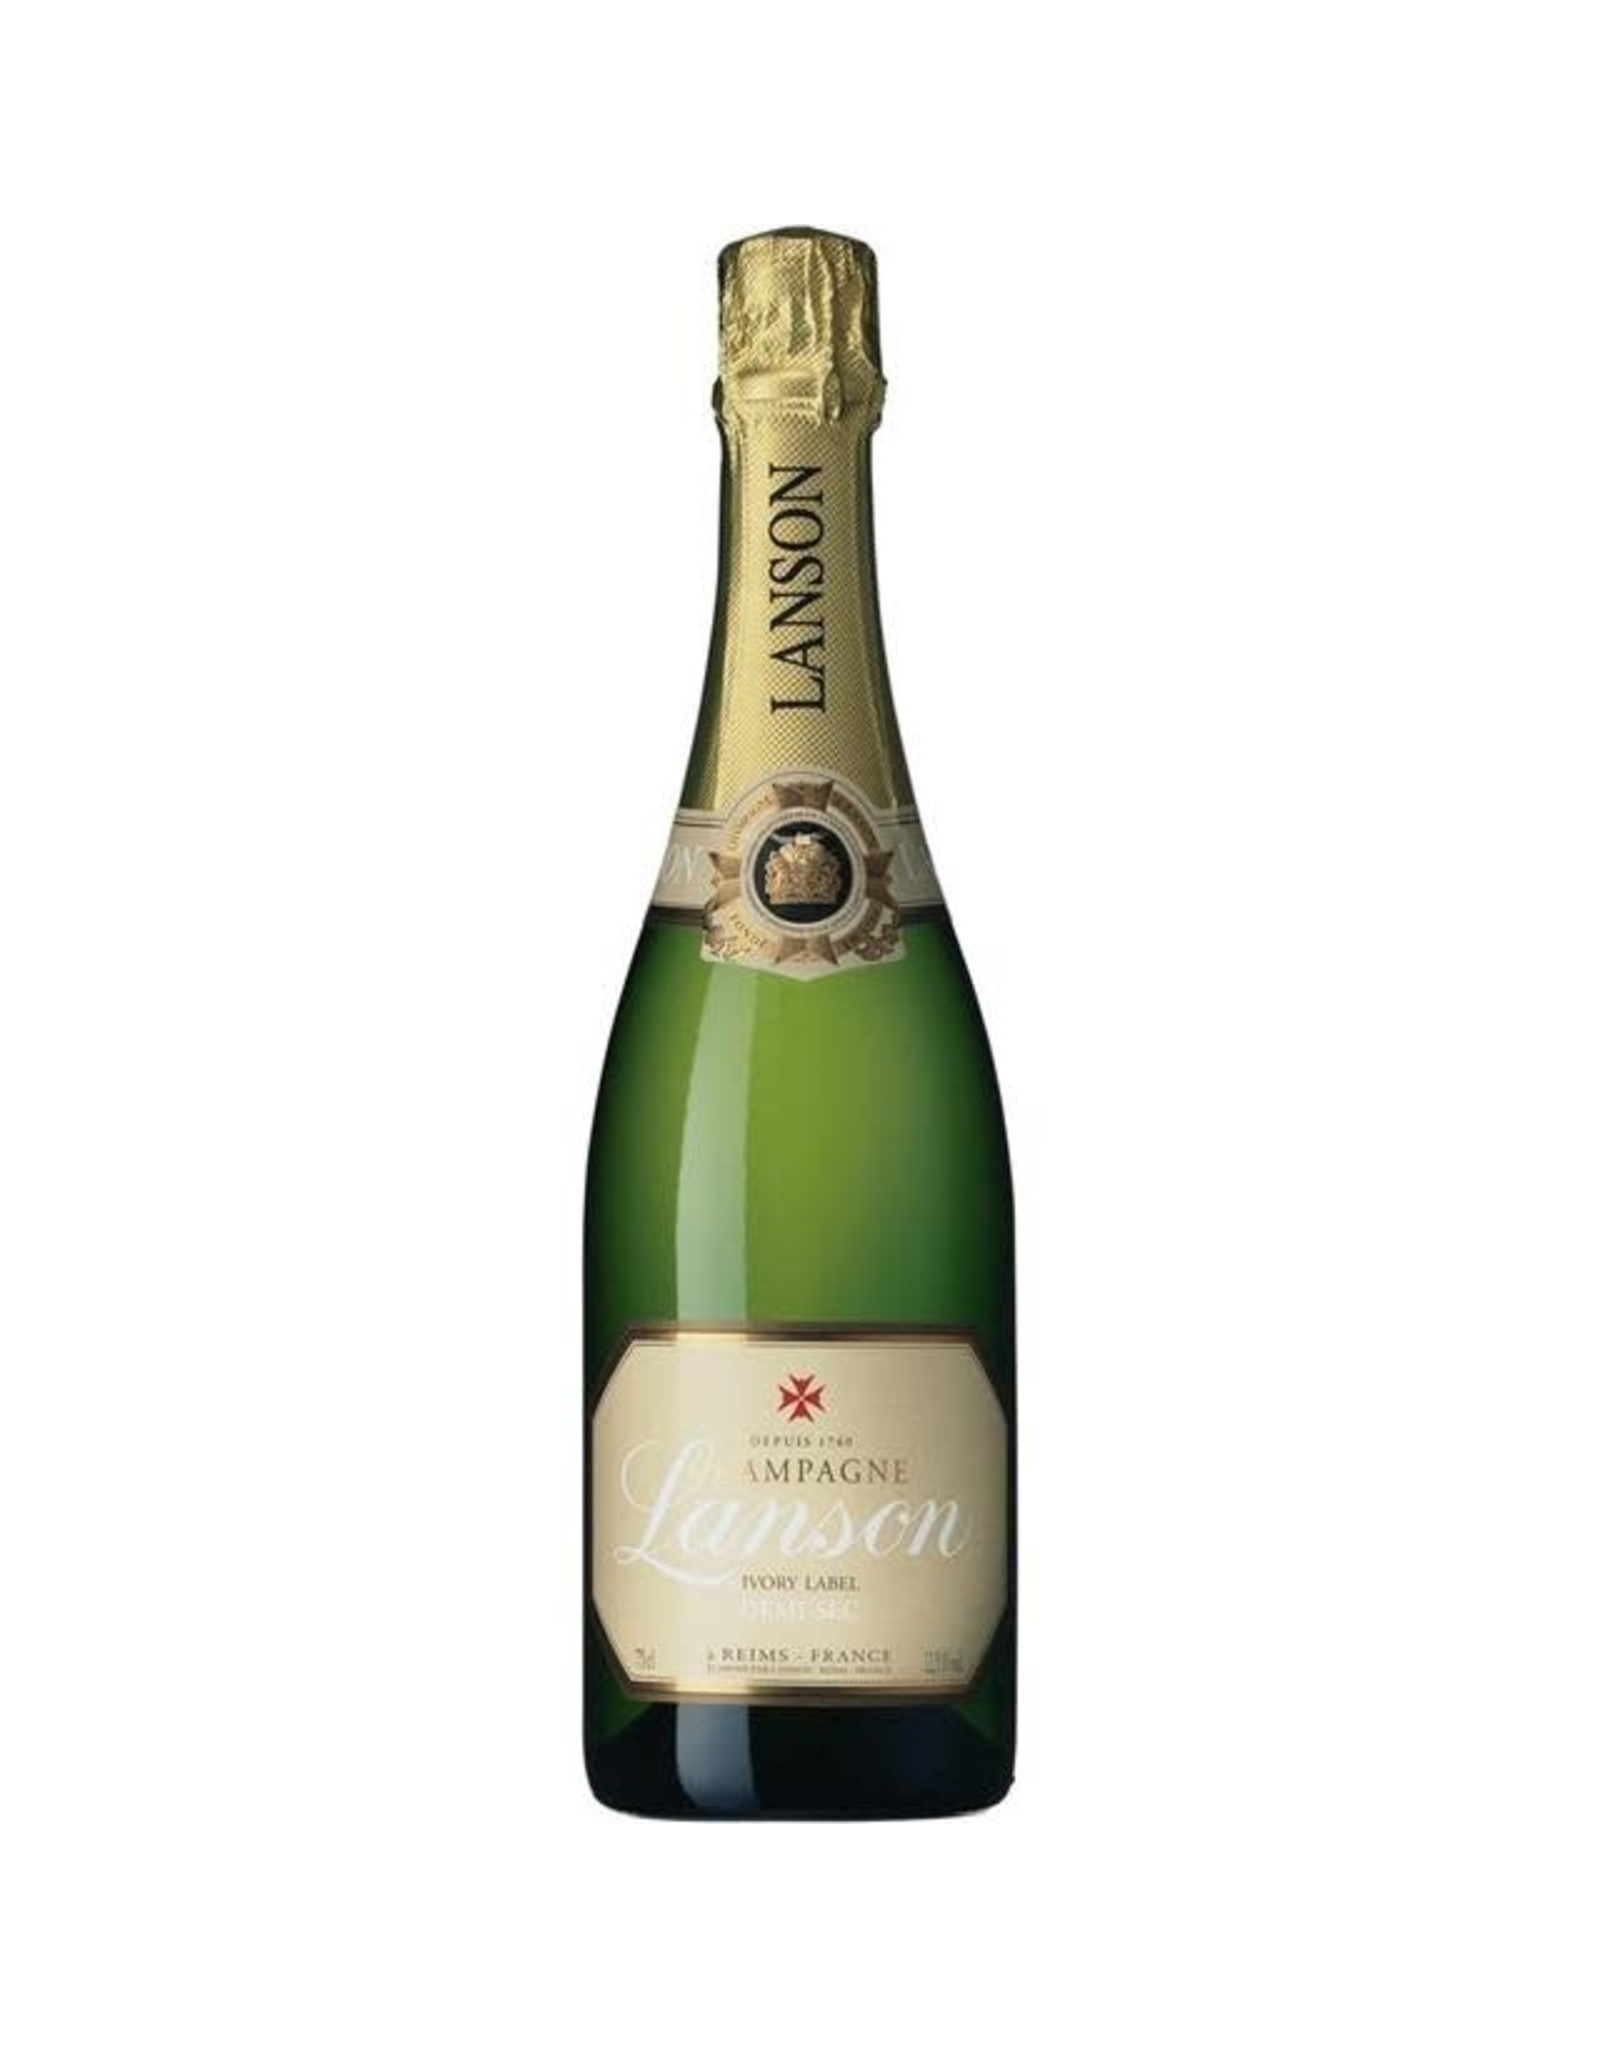 LANSON DEMI-SEC IVORY LABEL CHAMPAGNE 750ML